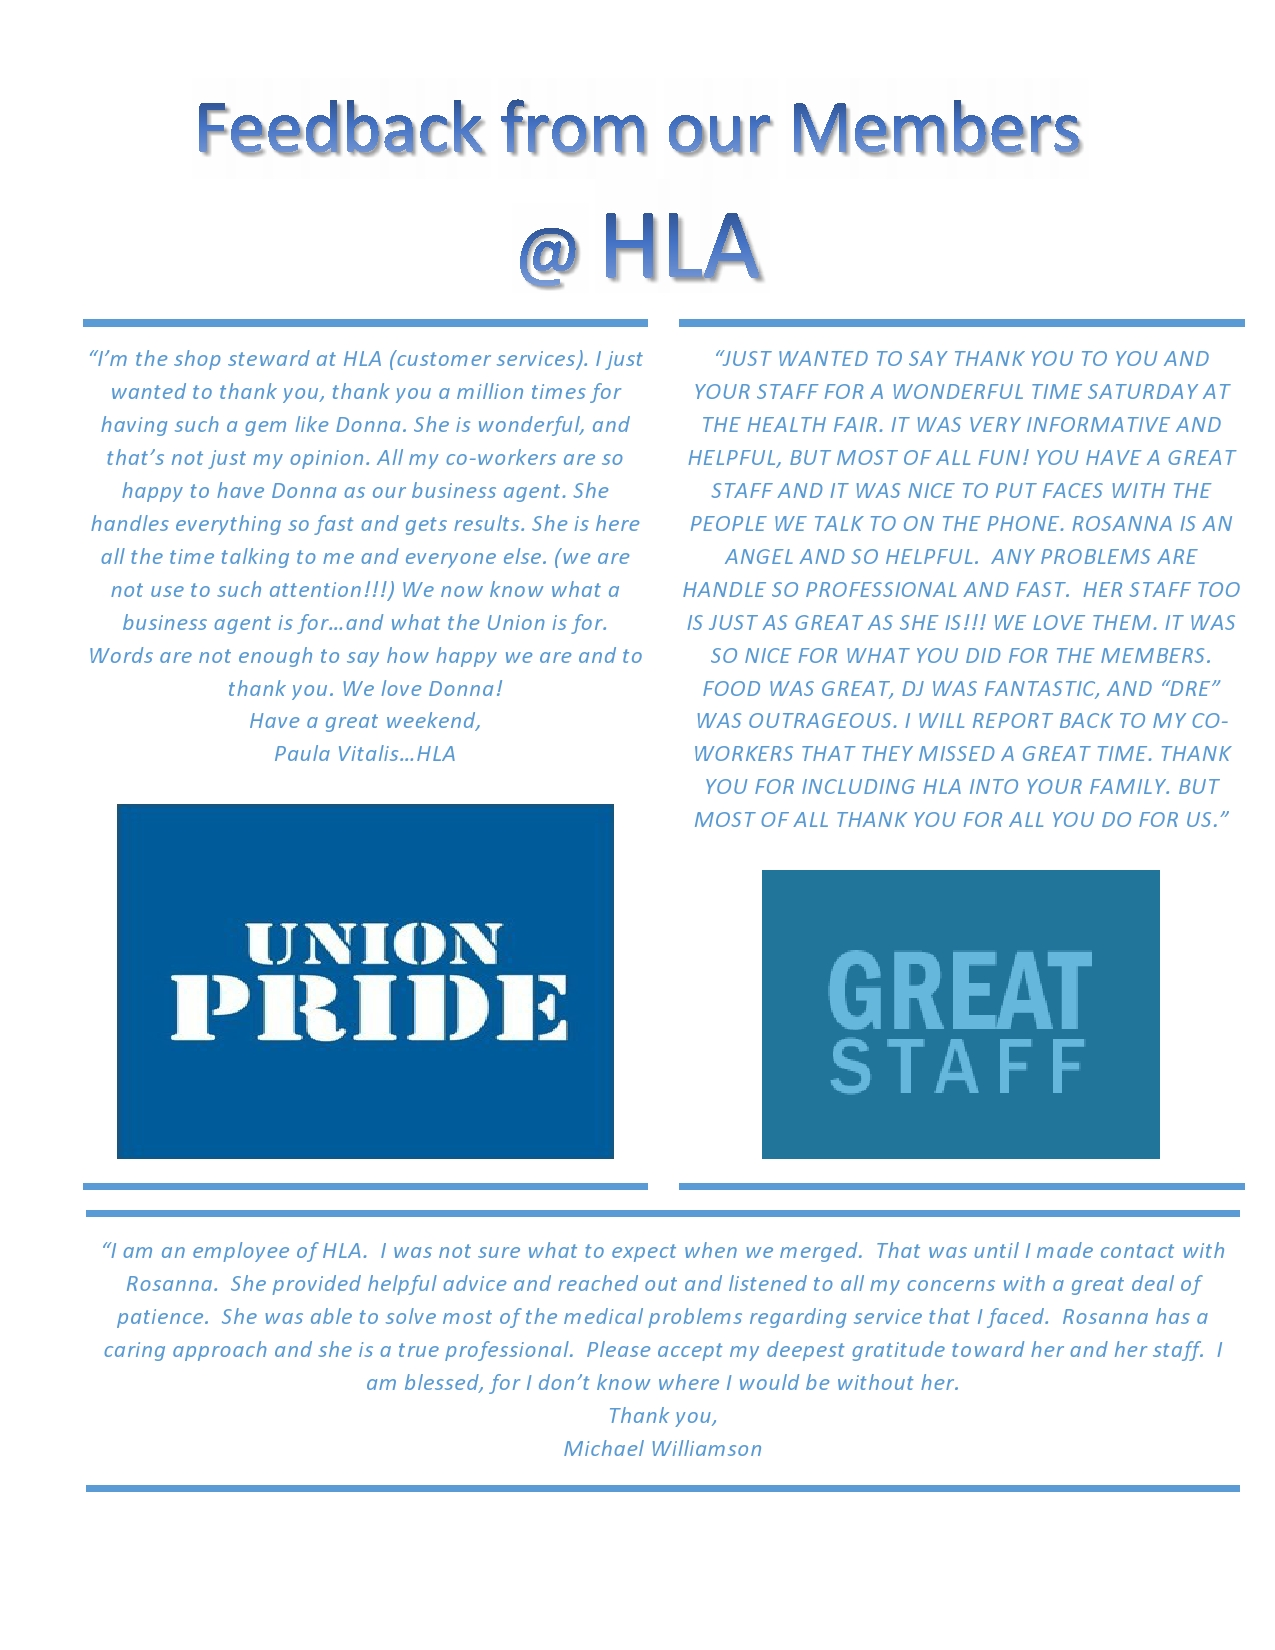 Feedback from our members! | Local810